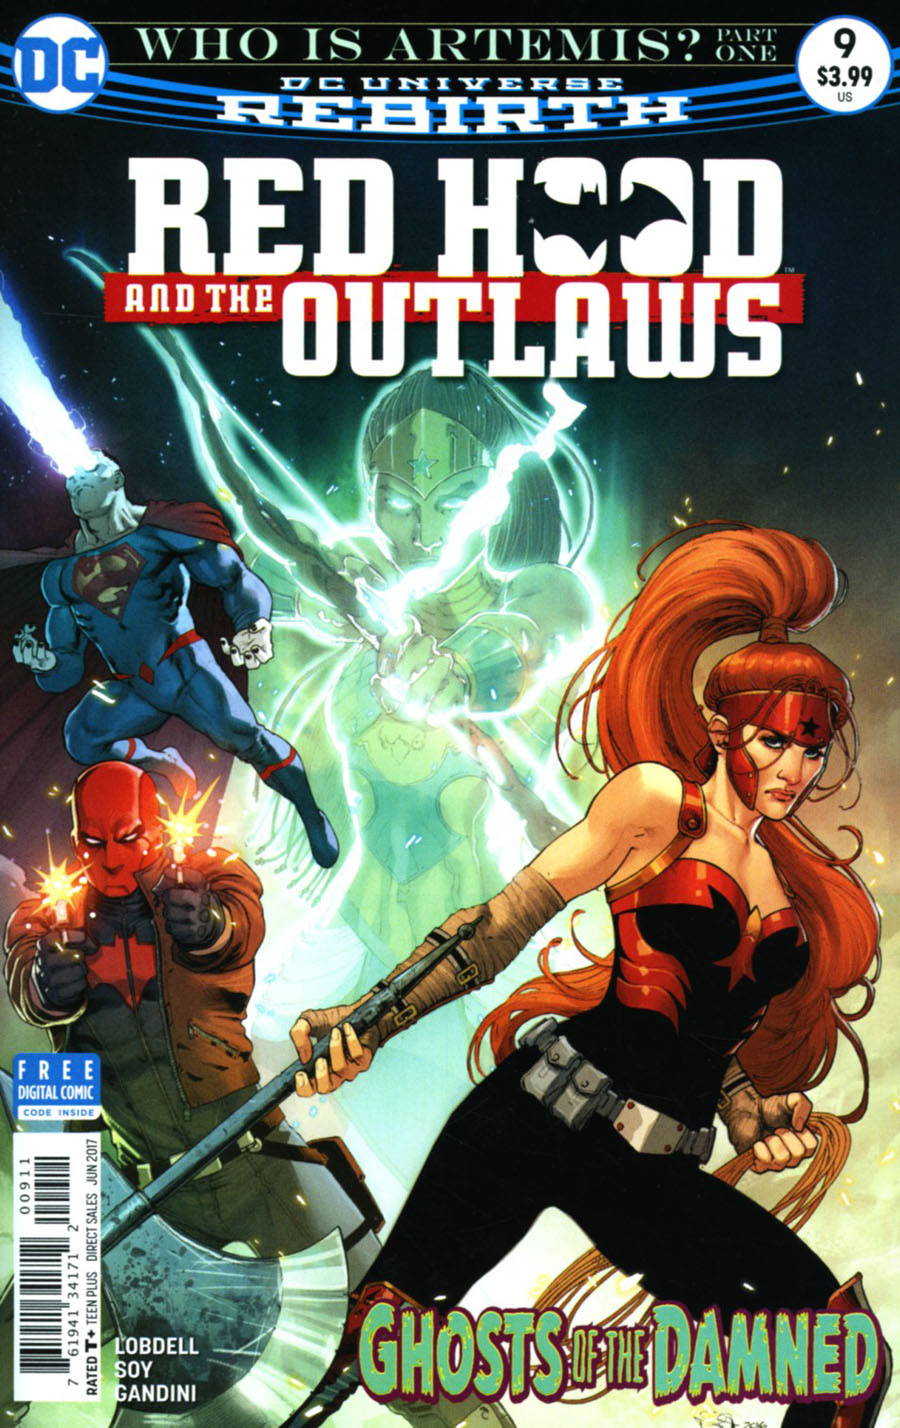 Red Hood And The Outlaws Vol 2 #9 Cover A Regular Nicola Scott Cover